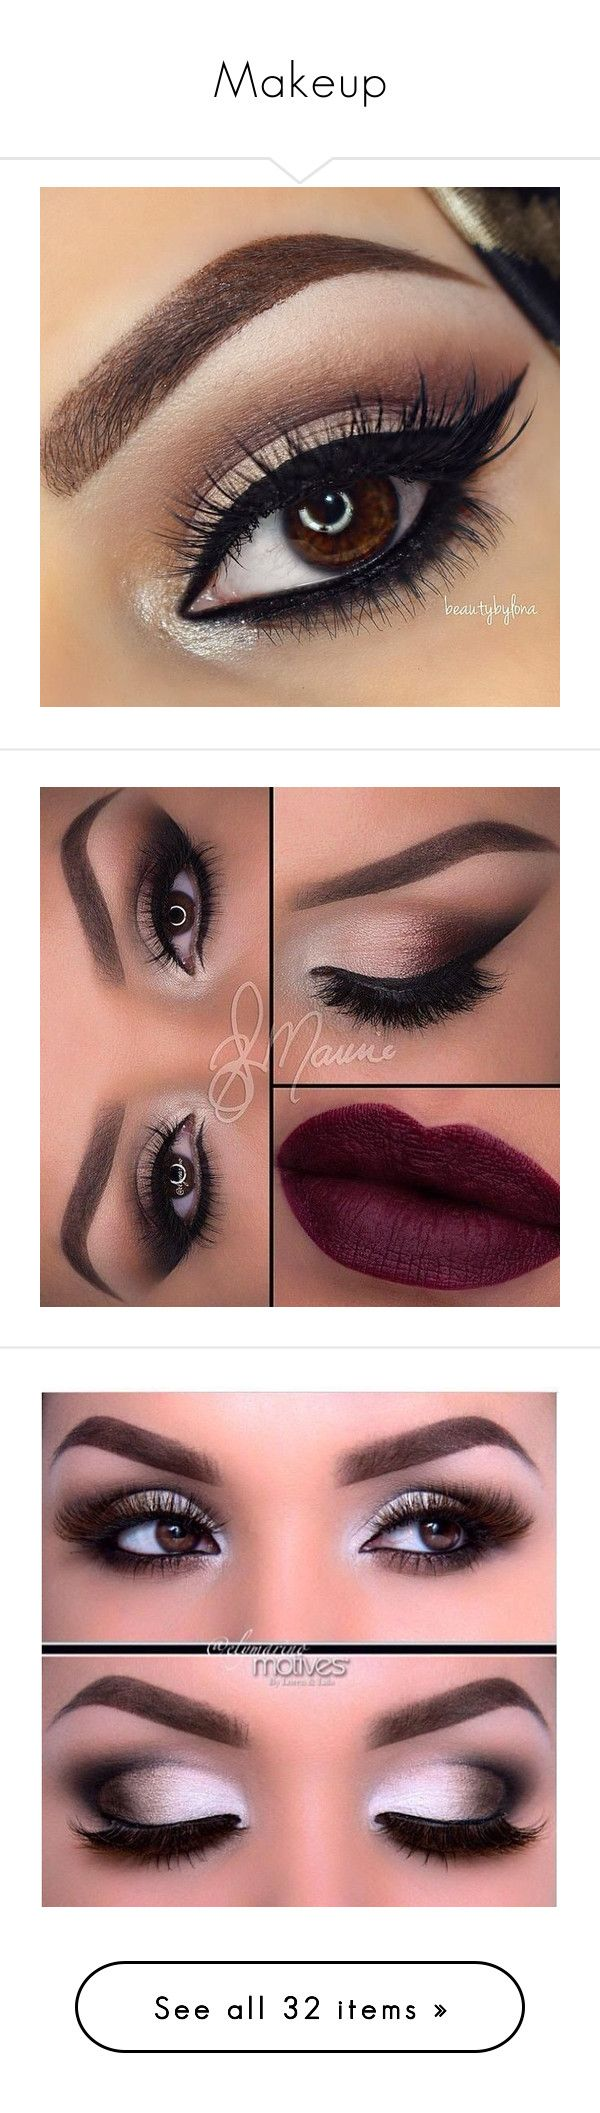 """""""Makeup"""" by obeyyyxllovve ❤ liked on Polyvore featuring beauty products, makeup, eyes, beauty, eye makeup, eye make up, lip, eyeshadow, makeup eyes and maquiagem"""